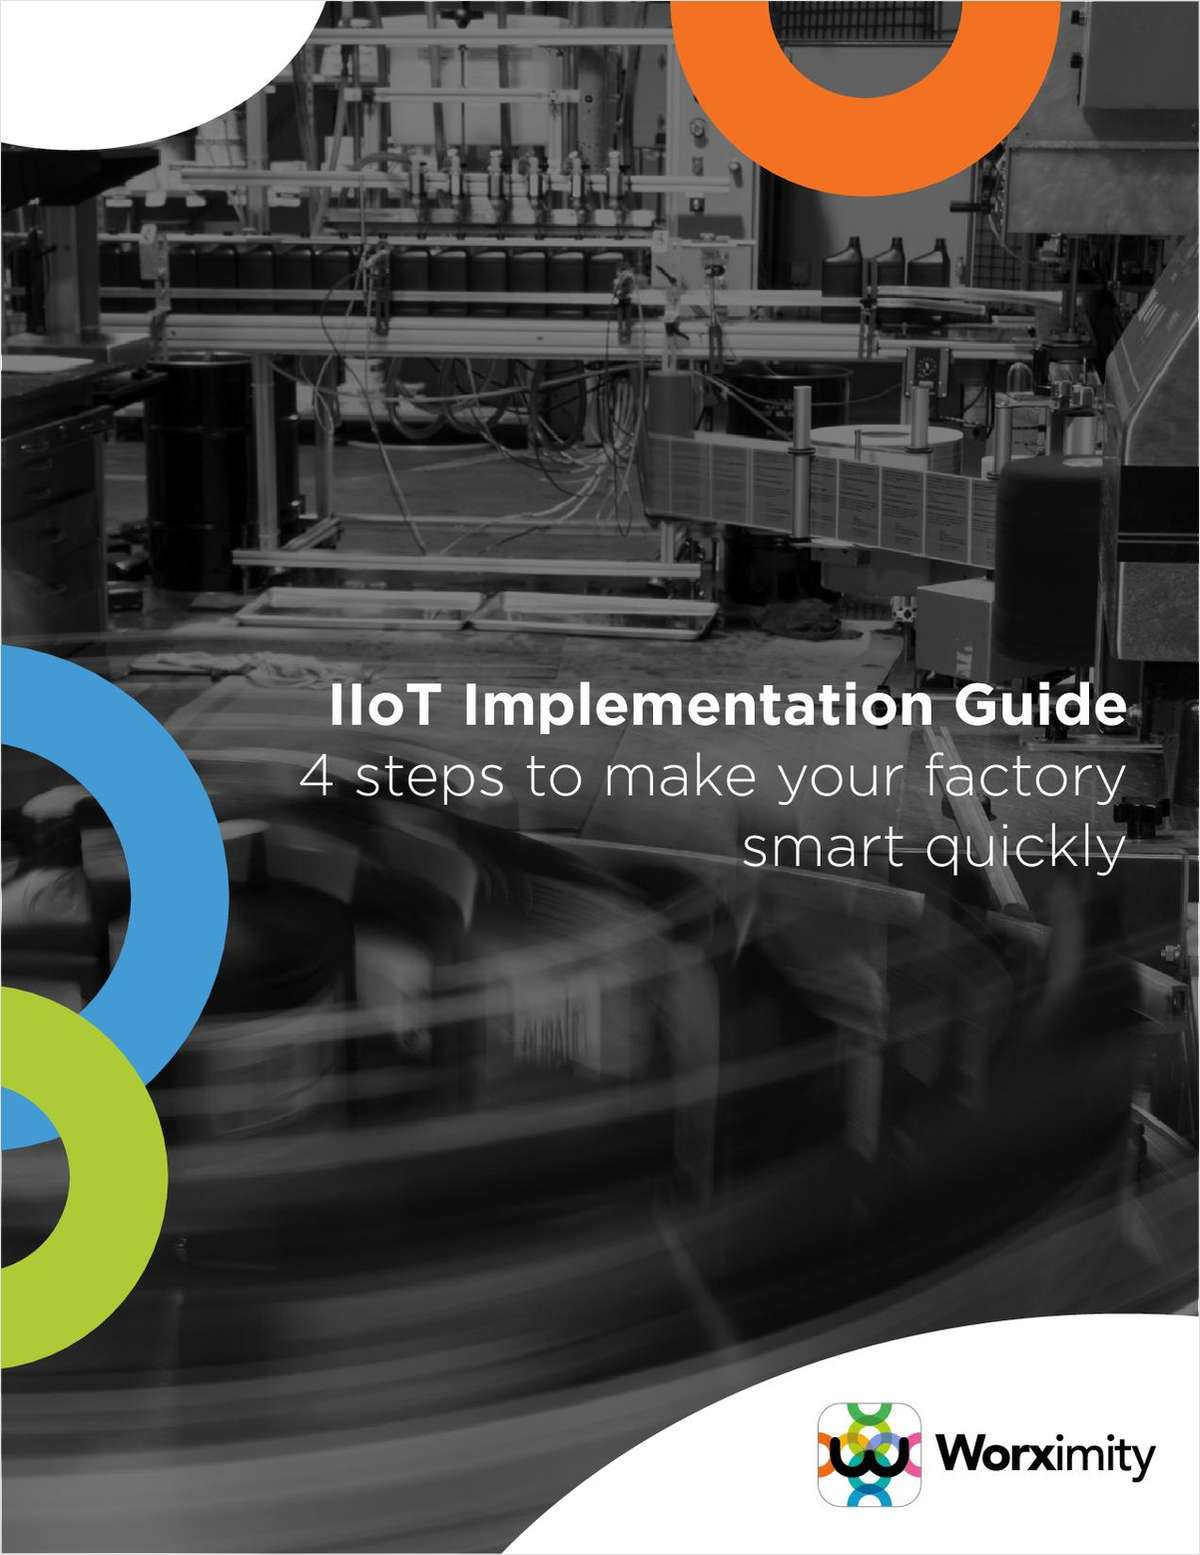 The IIoT - 4 Steps to Implementation Ebook for Food, CPG, Plastics and Packaging Manufacturers.